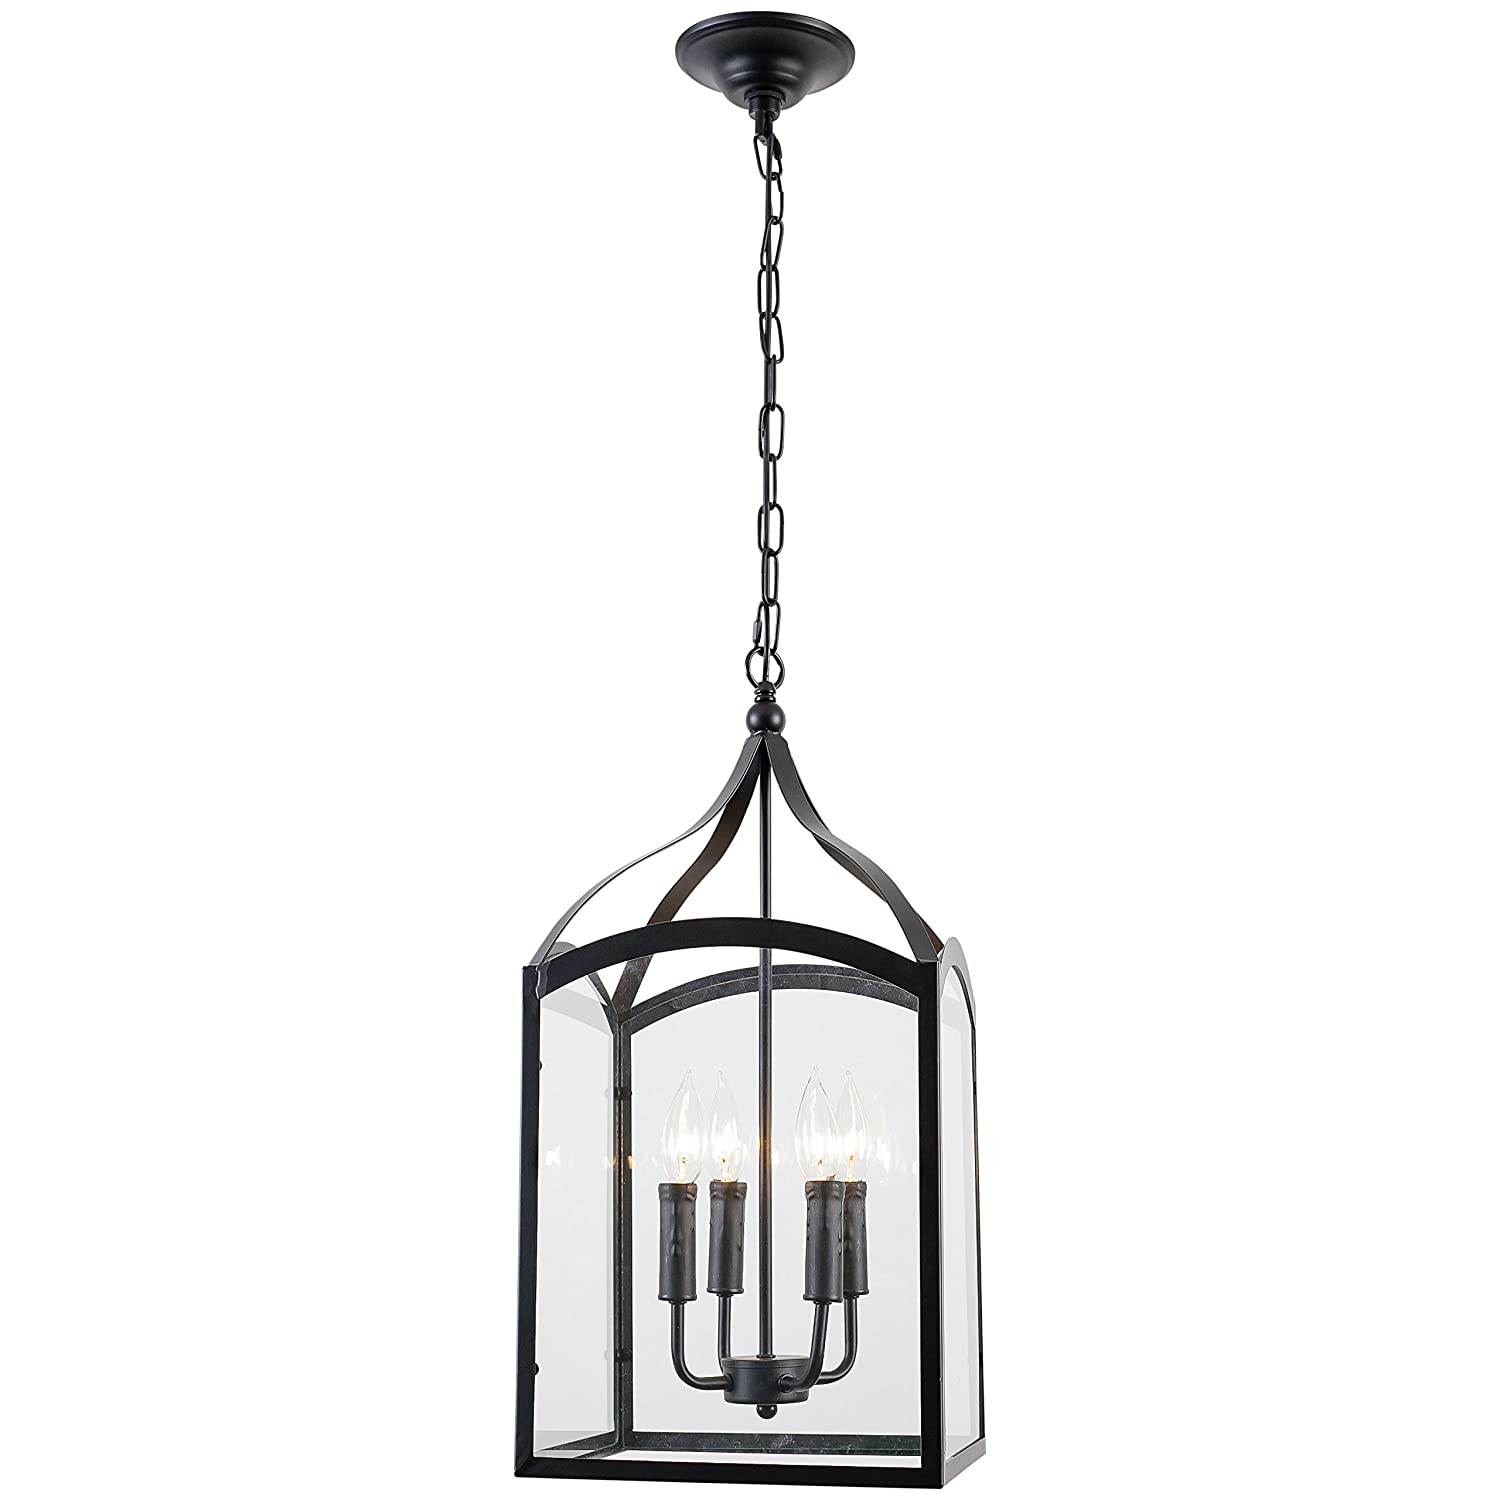 Light society 4 light victoria foyer pendant lamp matte black shade with clear glass panels vintage modern industrial lighting fixture ls c112